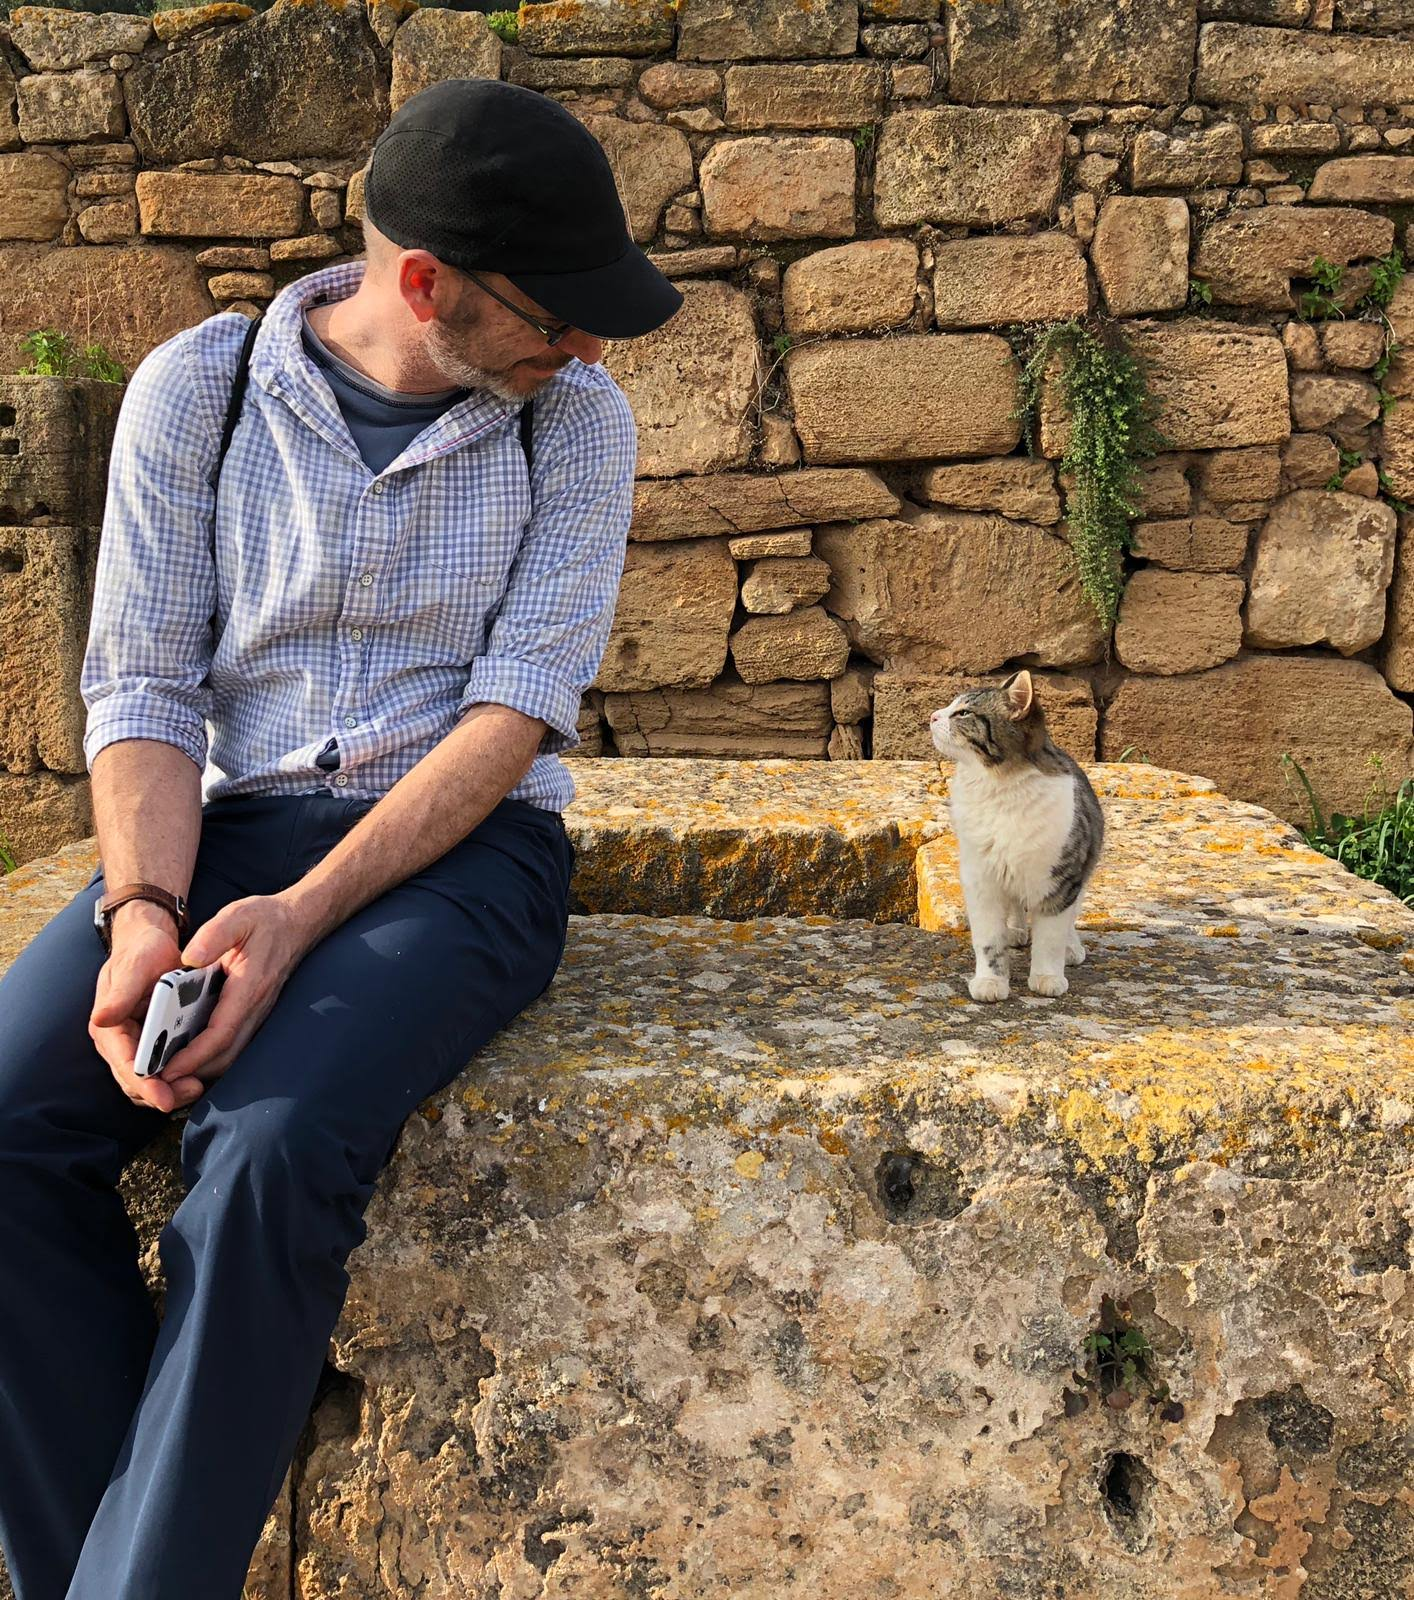 My father, an avid dog lover, caves to the charm of a sweet history-loving cat in the magnificent ruins in Rabat. Photo credit: Fisher, 2019